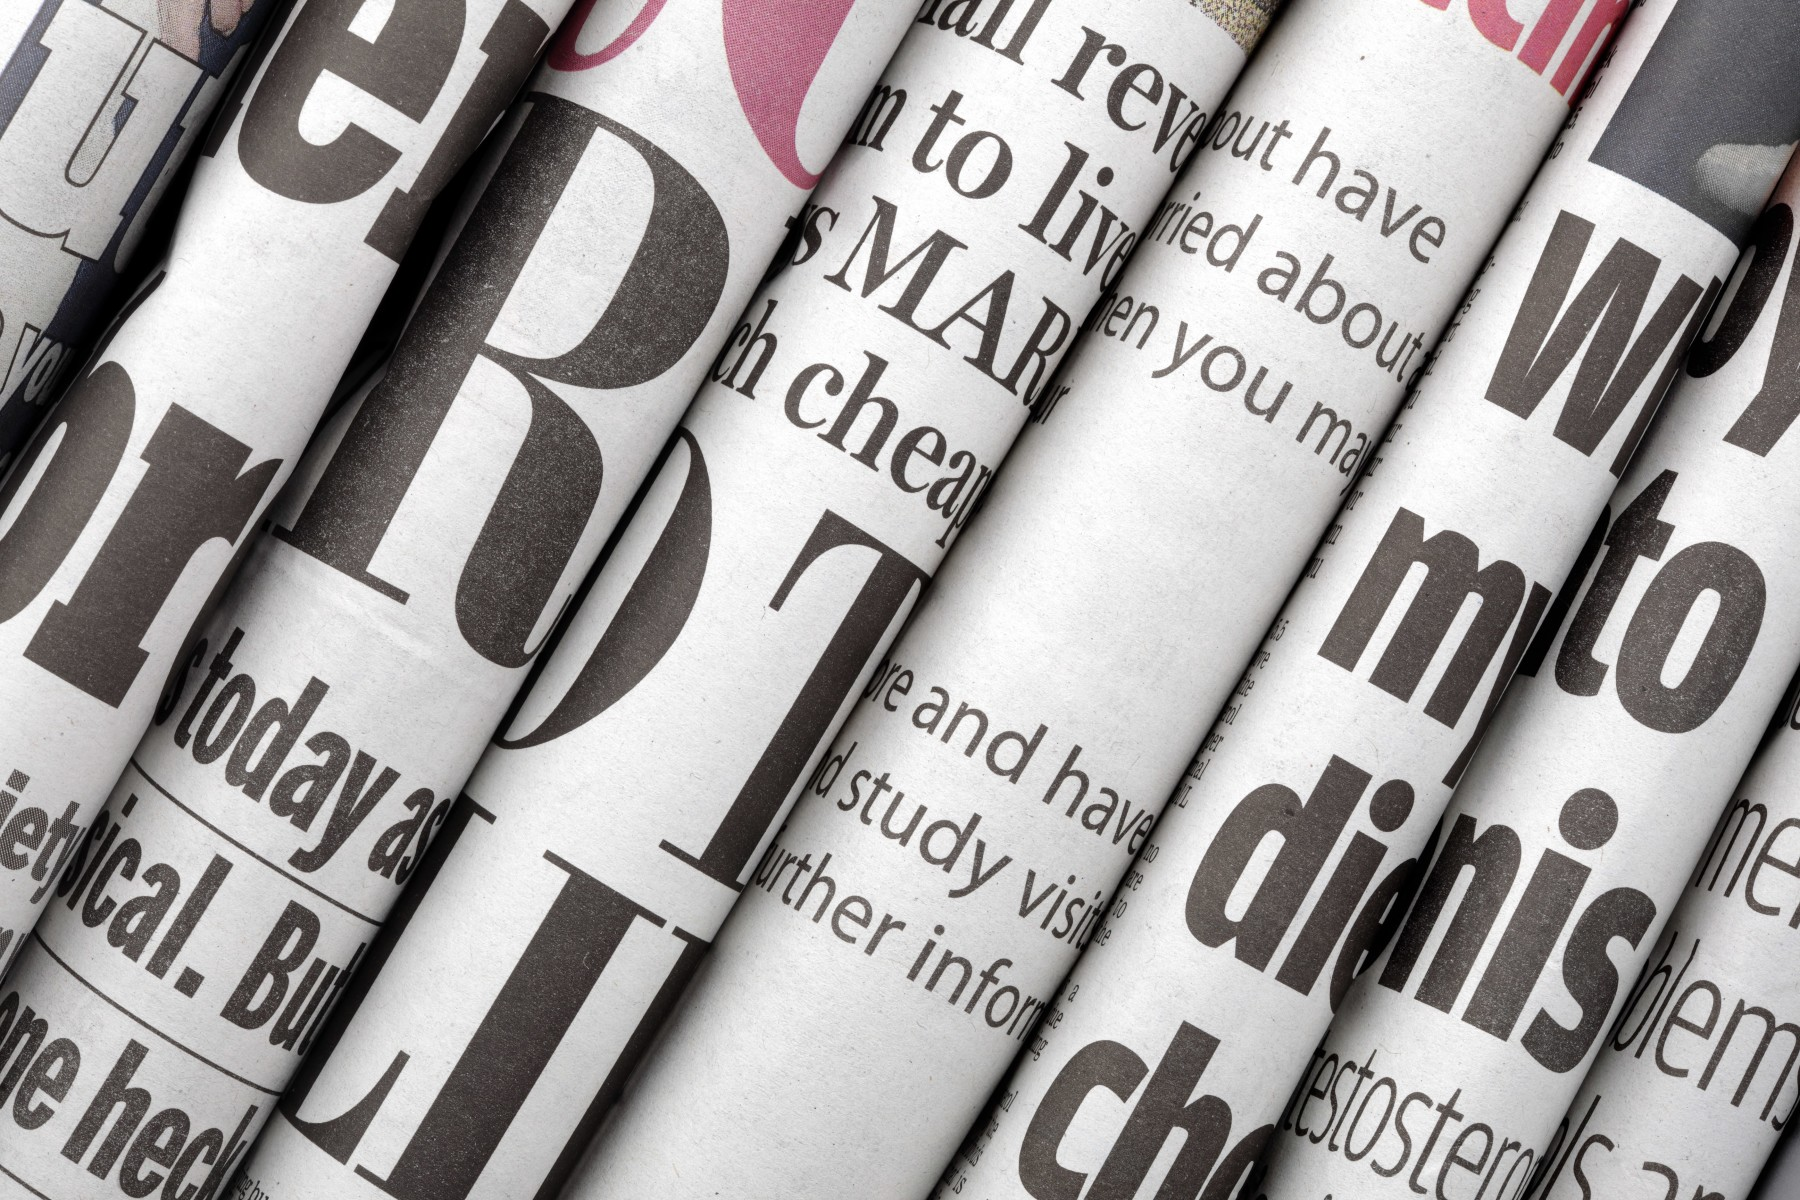 Four Editors Give Tips on Writing Headlines. You Won't Believe What Happens Next.